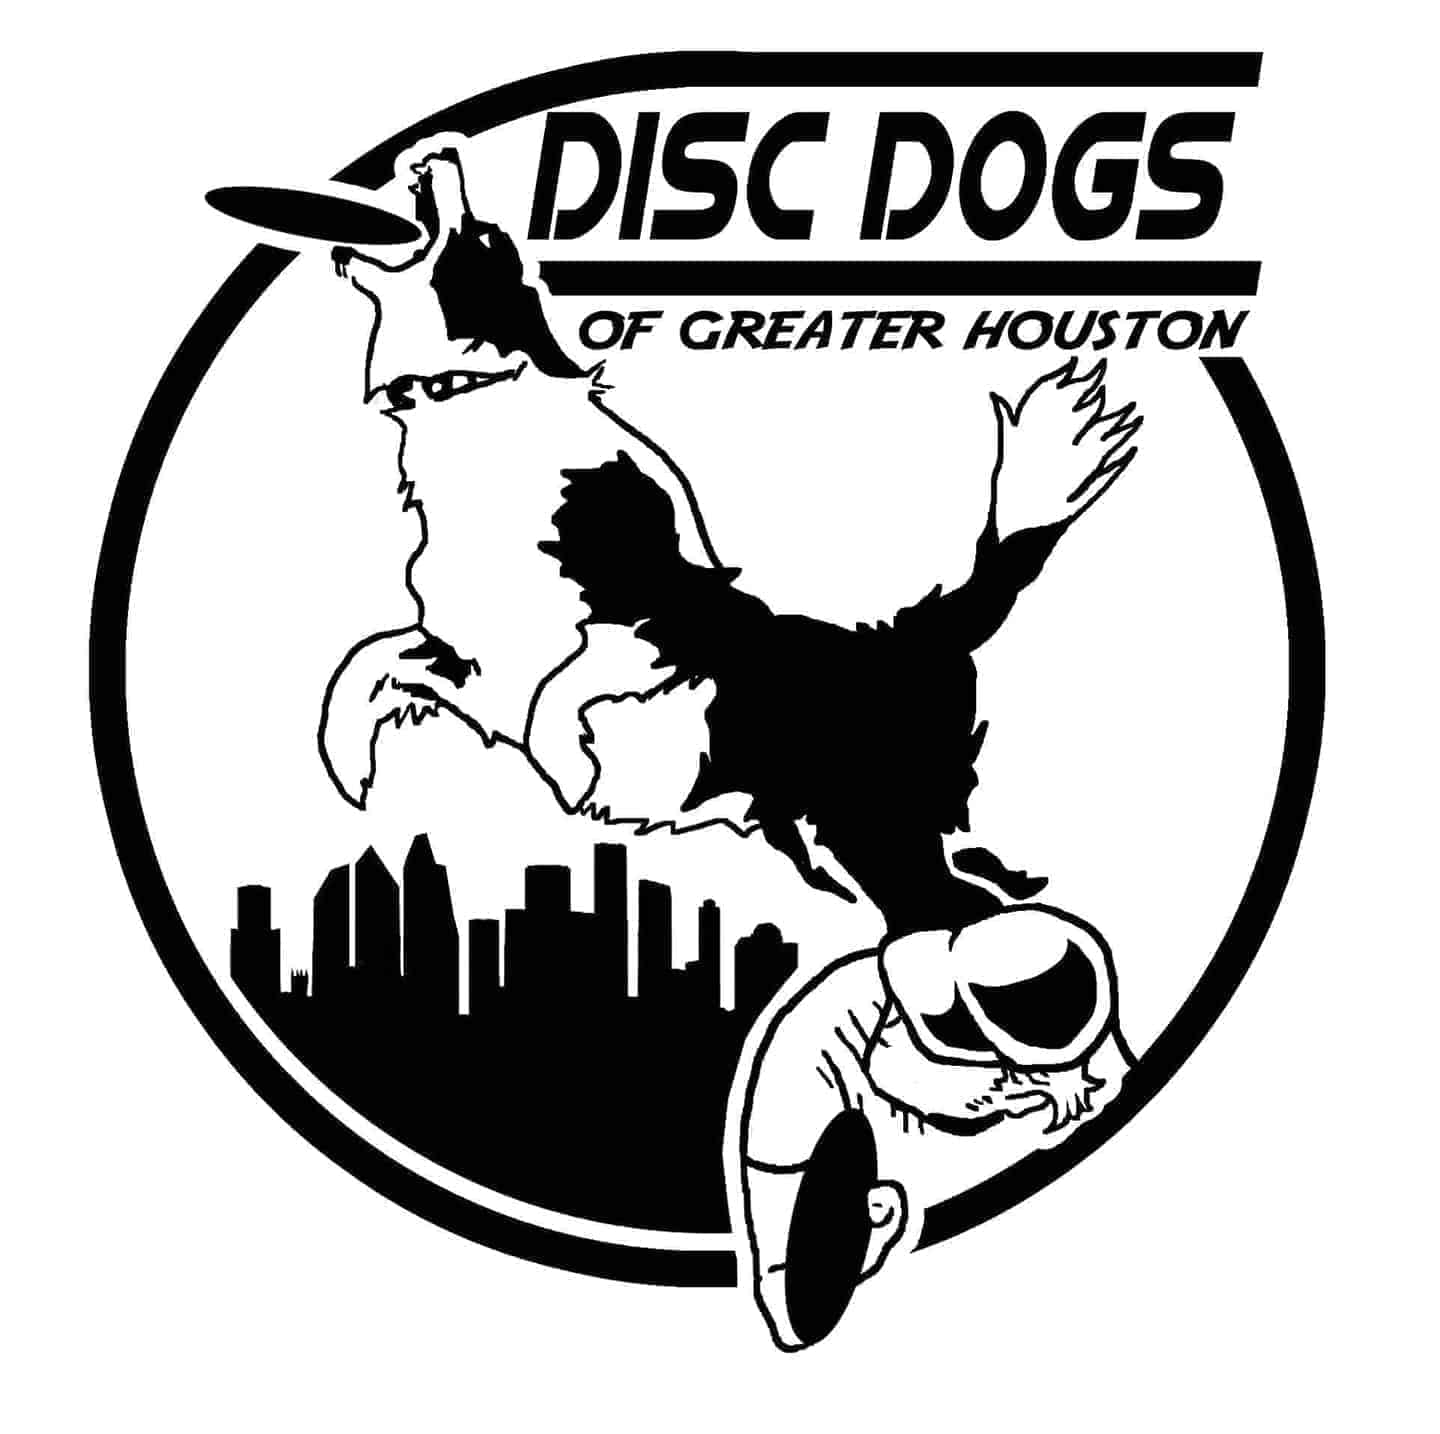 Disc Dogs of Greater Houston